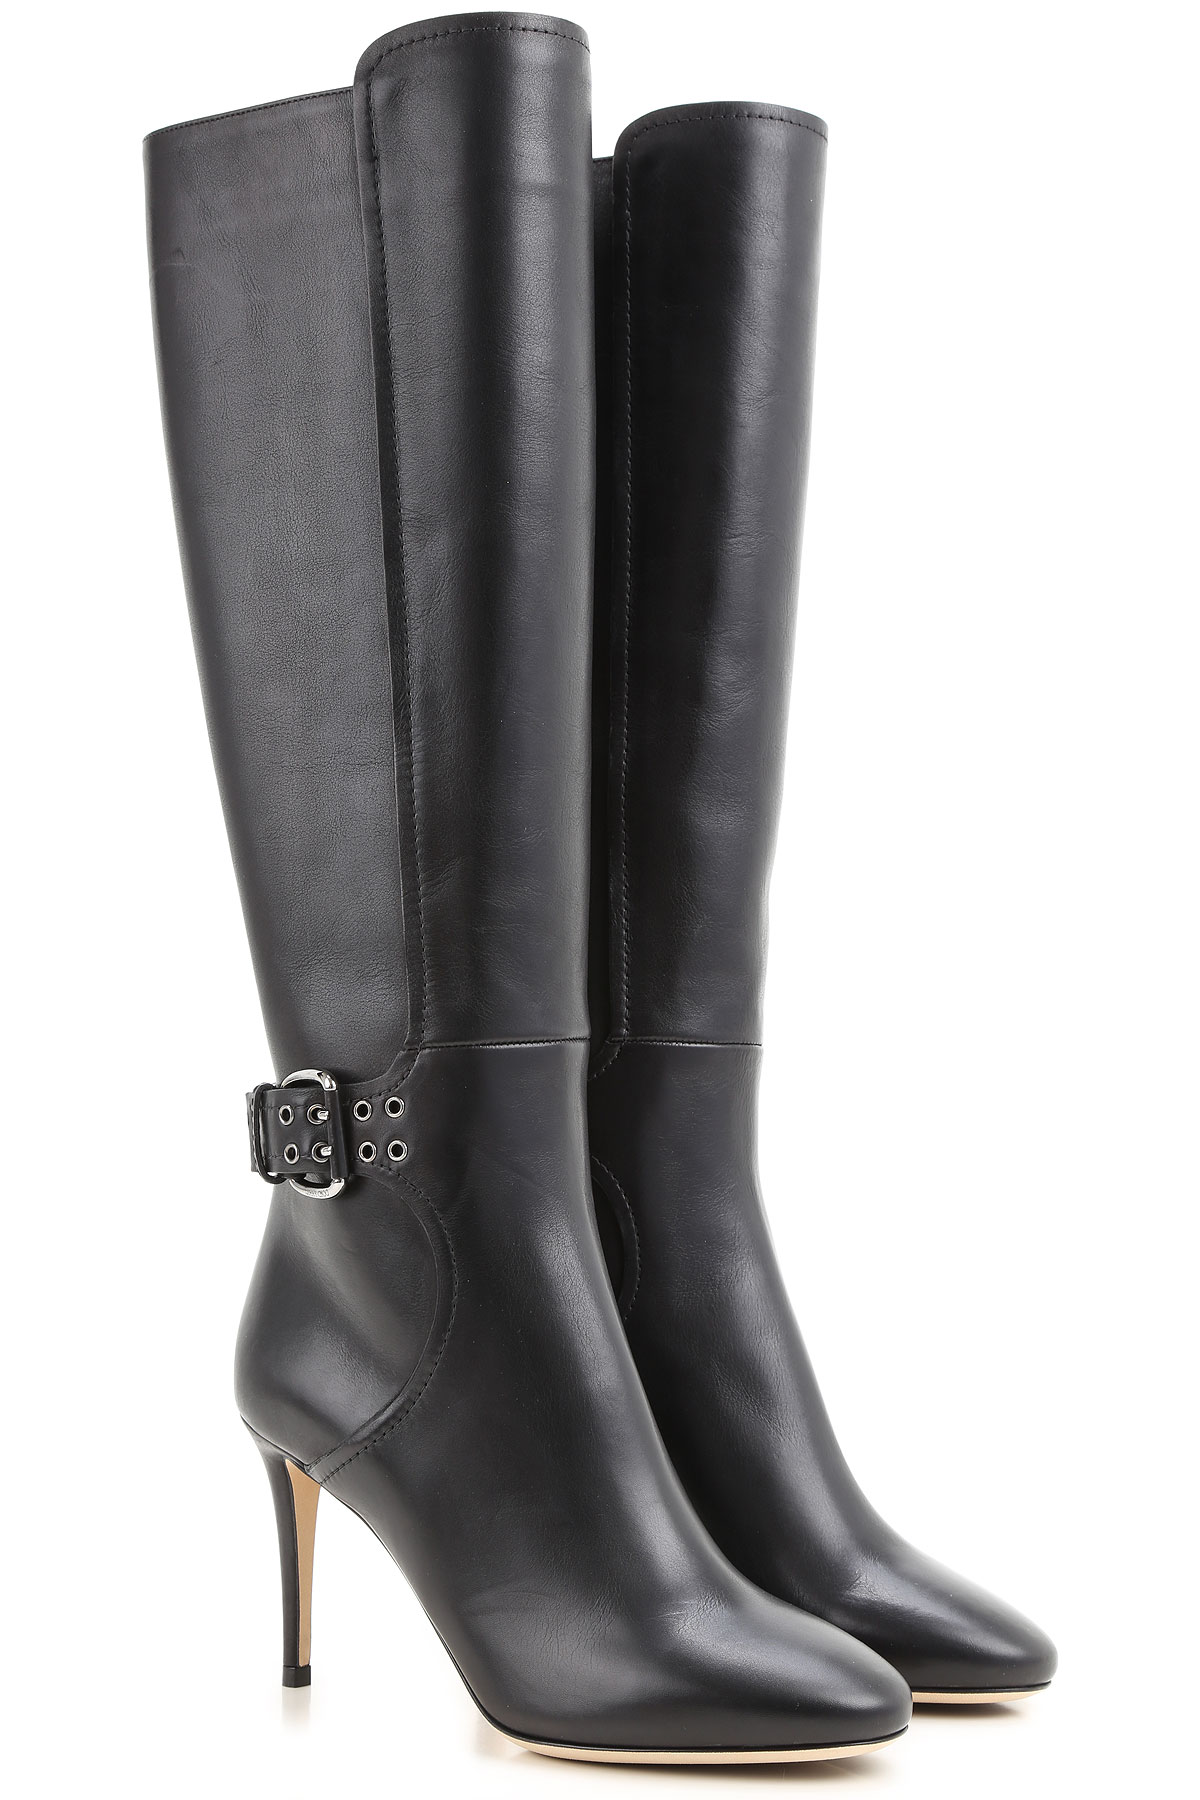 Jimmy Choo Boots for Women, Booties On Sale in Outlet, Black, Leather, 2019, 5 6 8.5 9 9.5